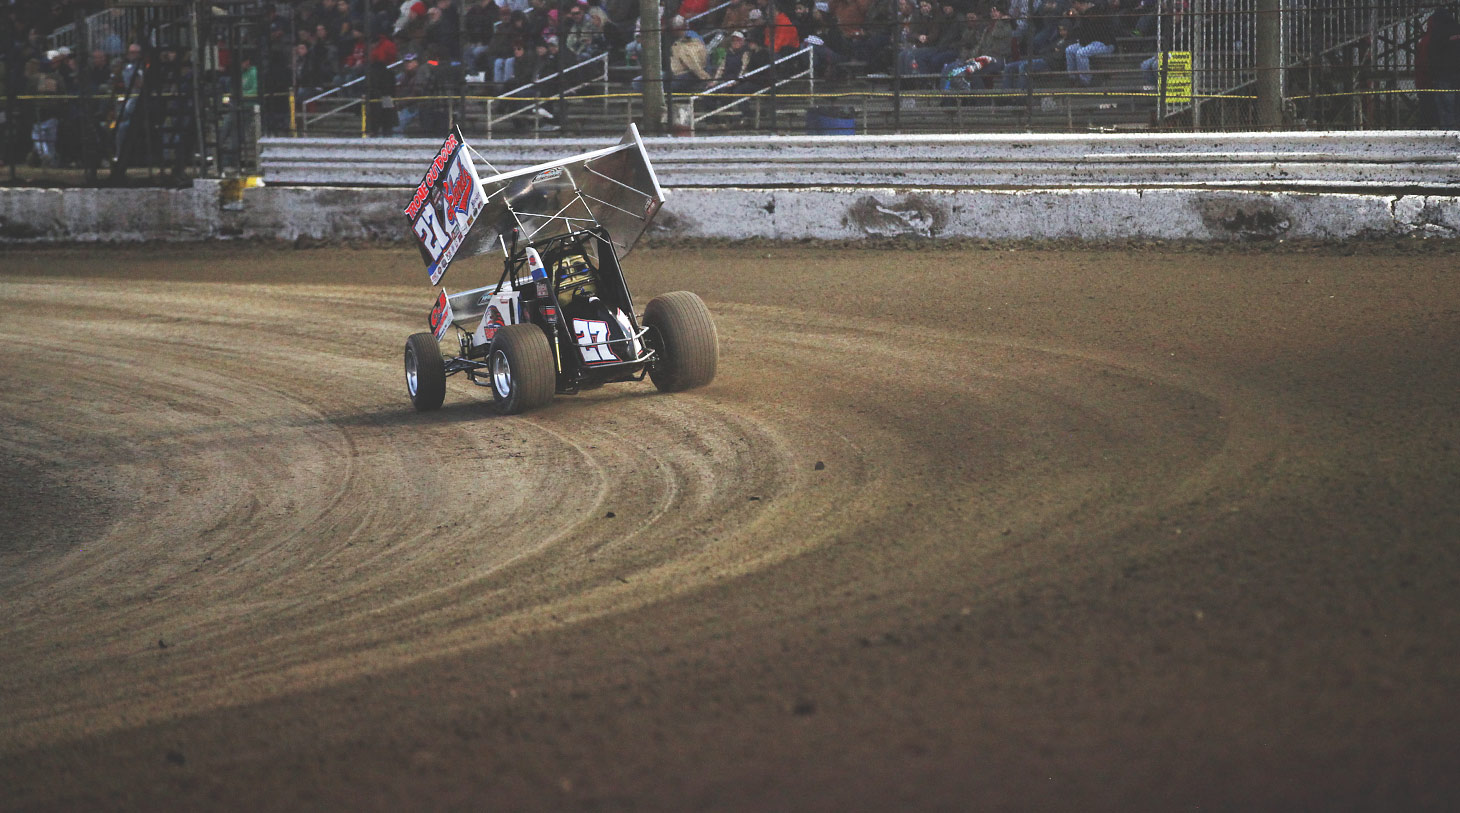 Hodnett blasts through turn 4 at Volusia | Photo: Jeffrey Turford